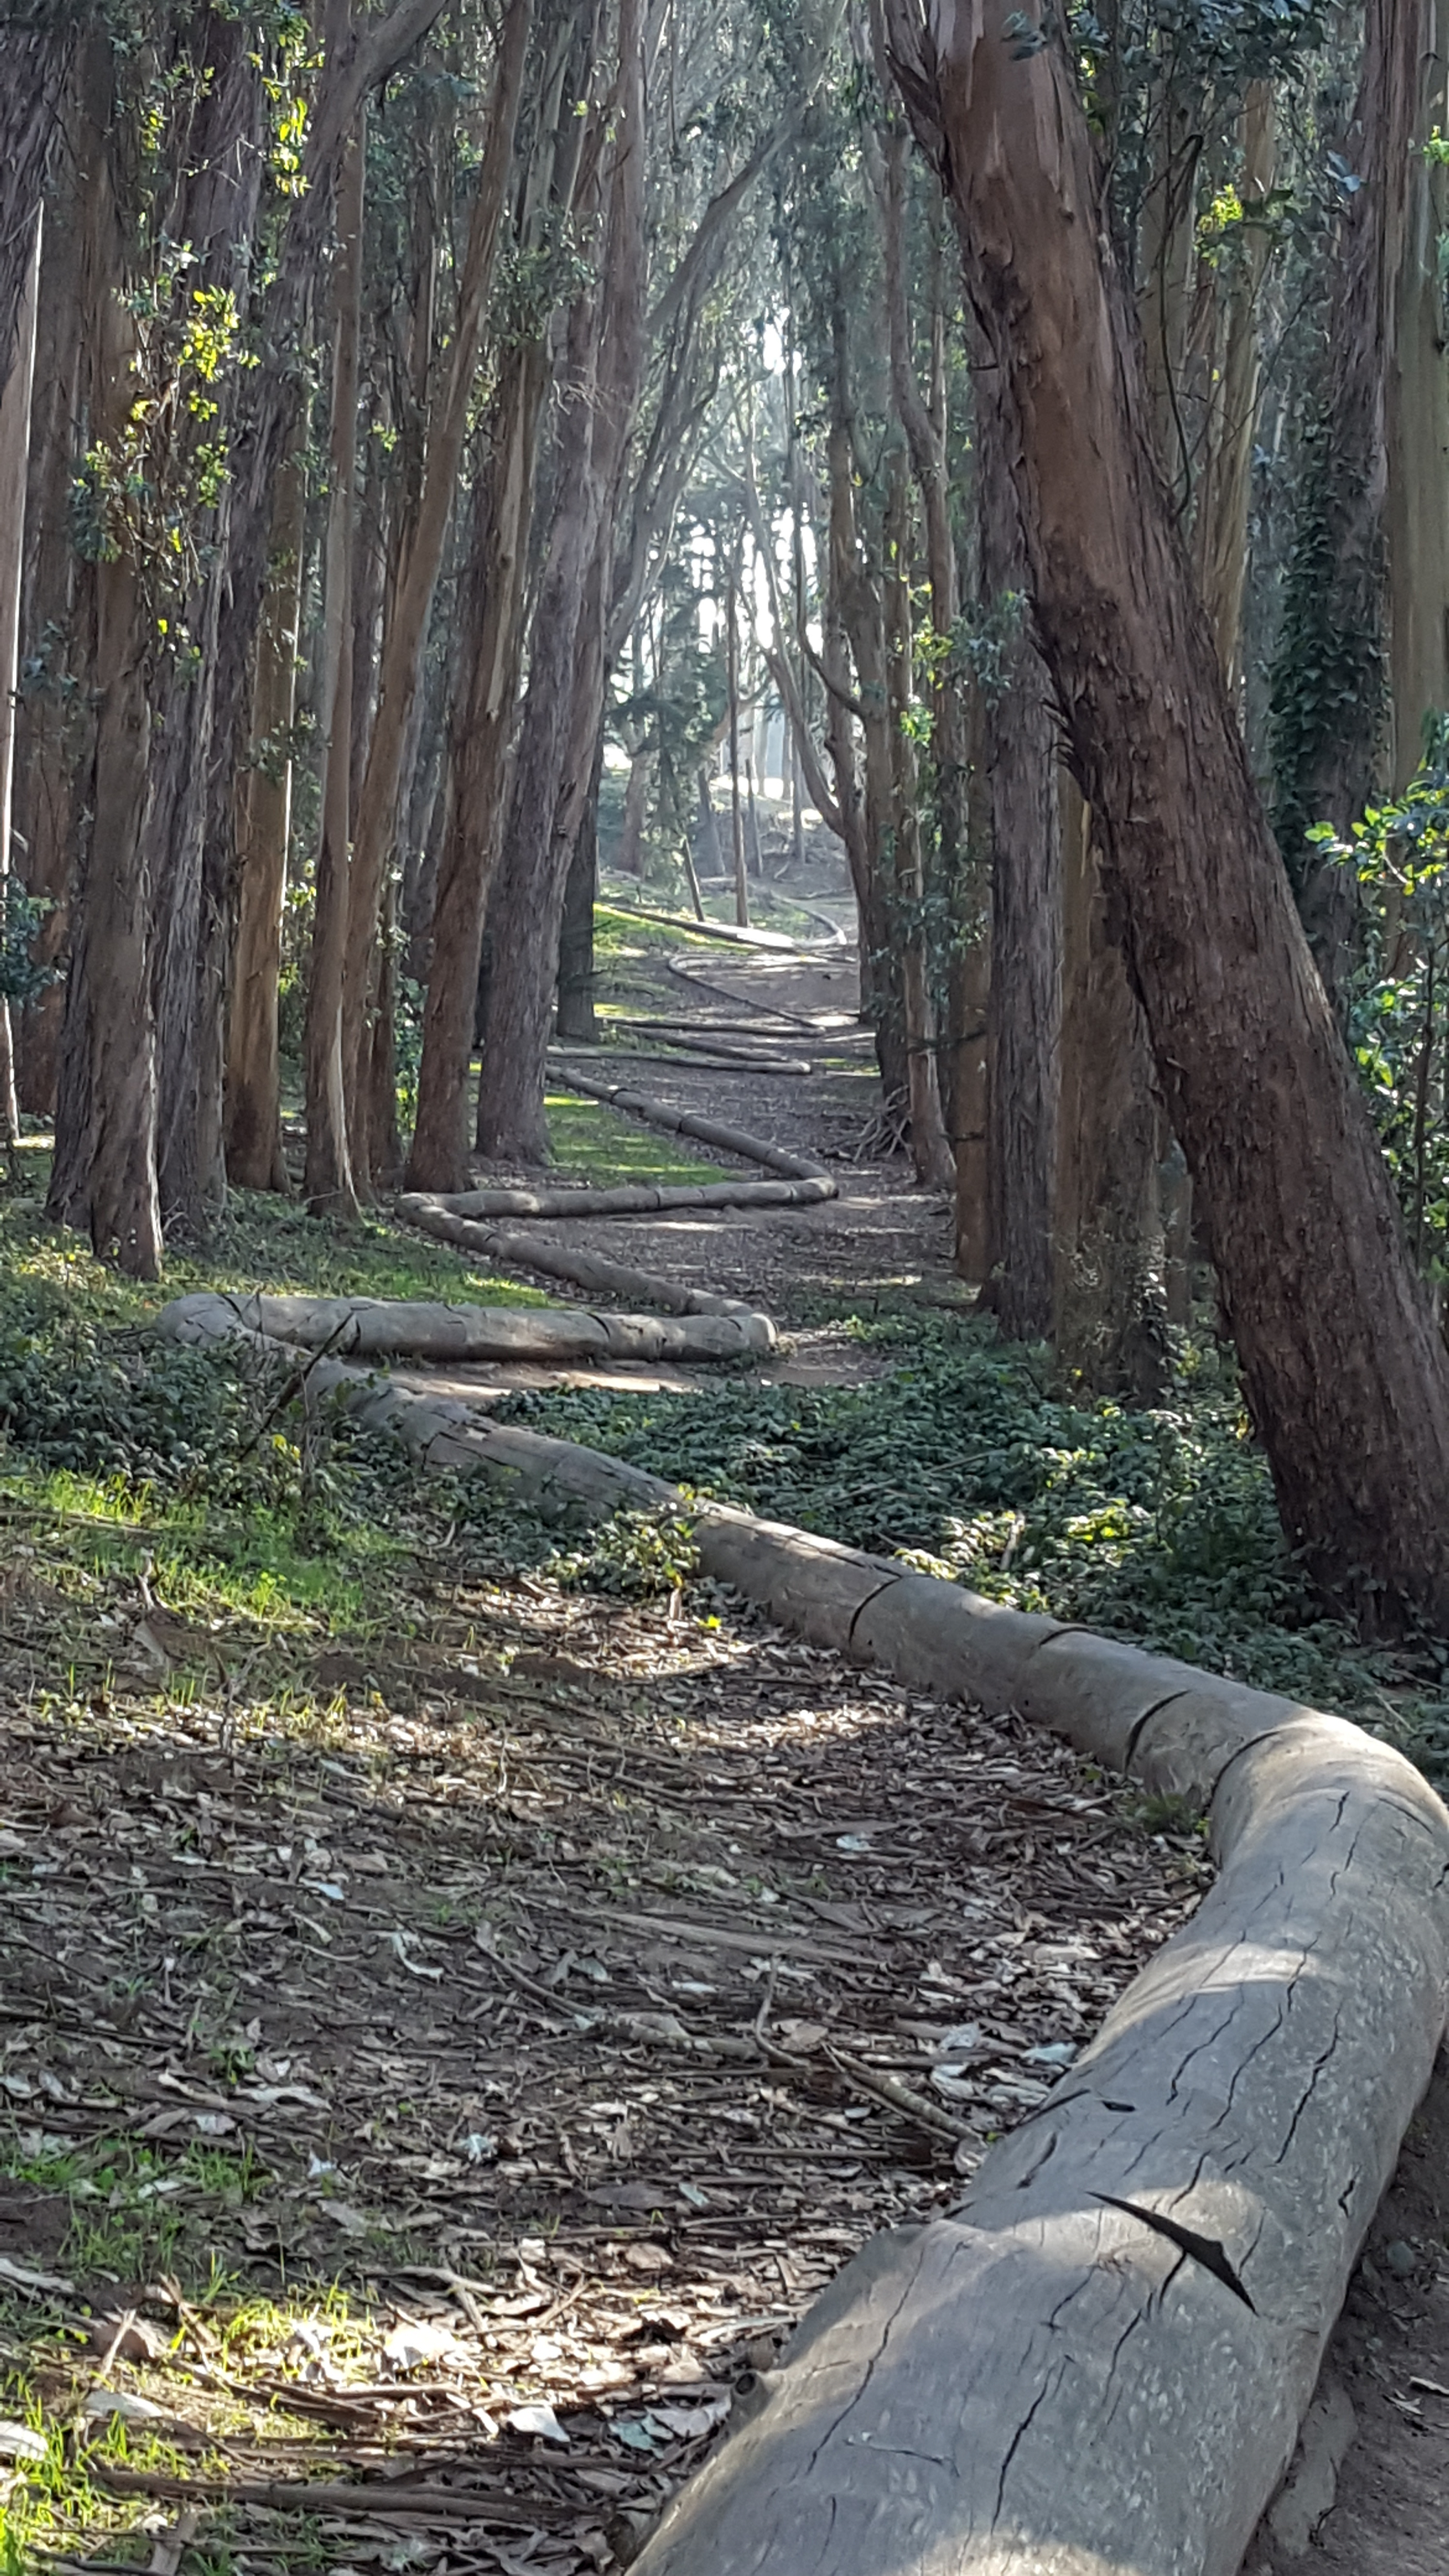 Treeline by Andy Goldsworthy, Presidio, SF